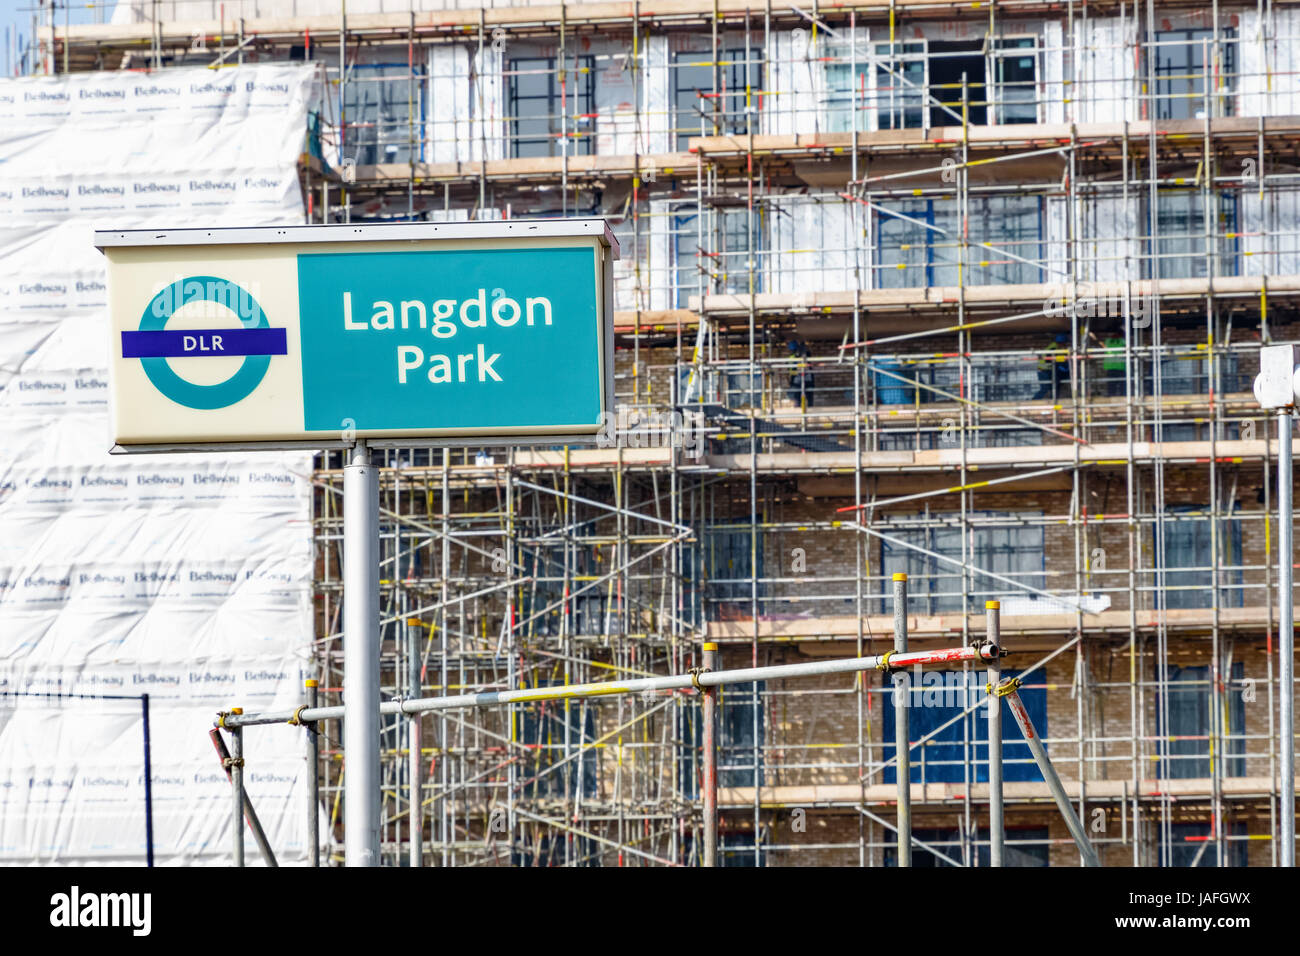 London, UK - March 27th, 2017 - Langdon Park sign with a construction site of  new development - Stock Image